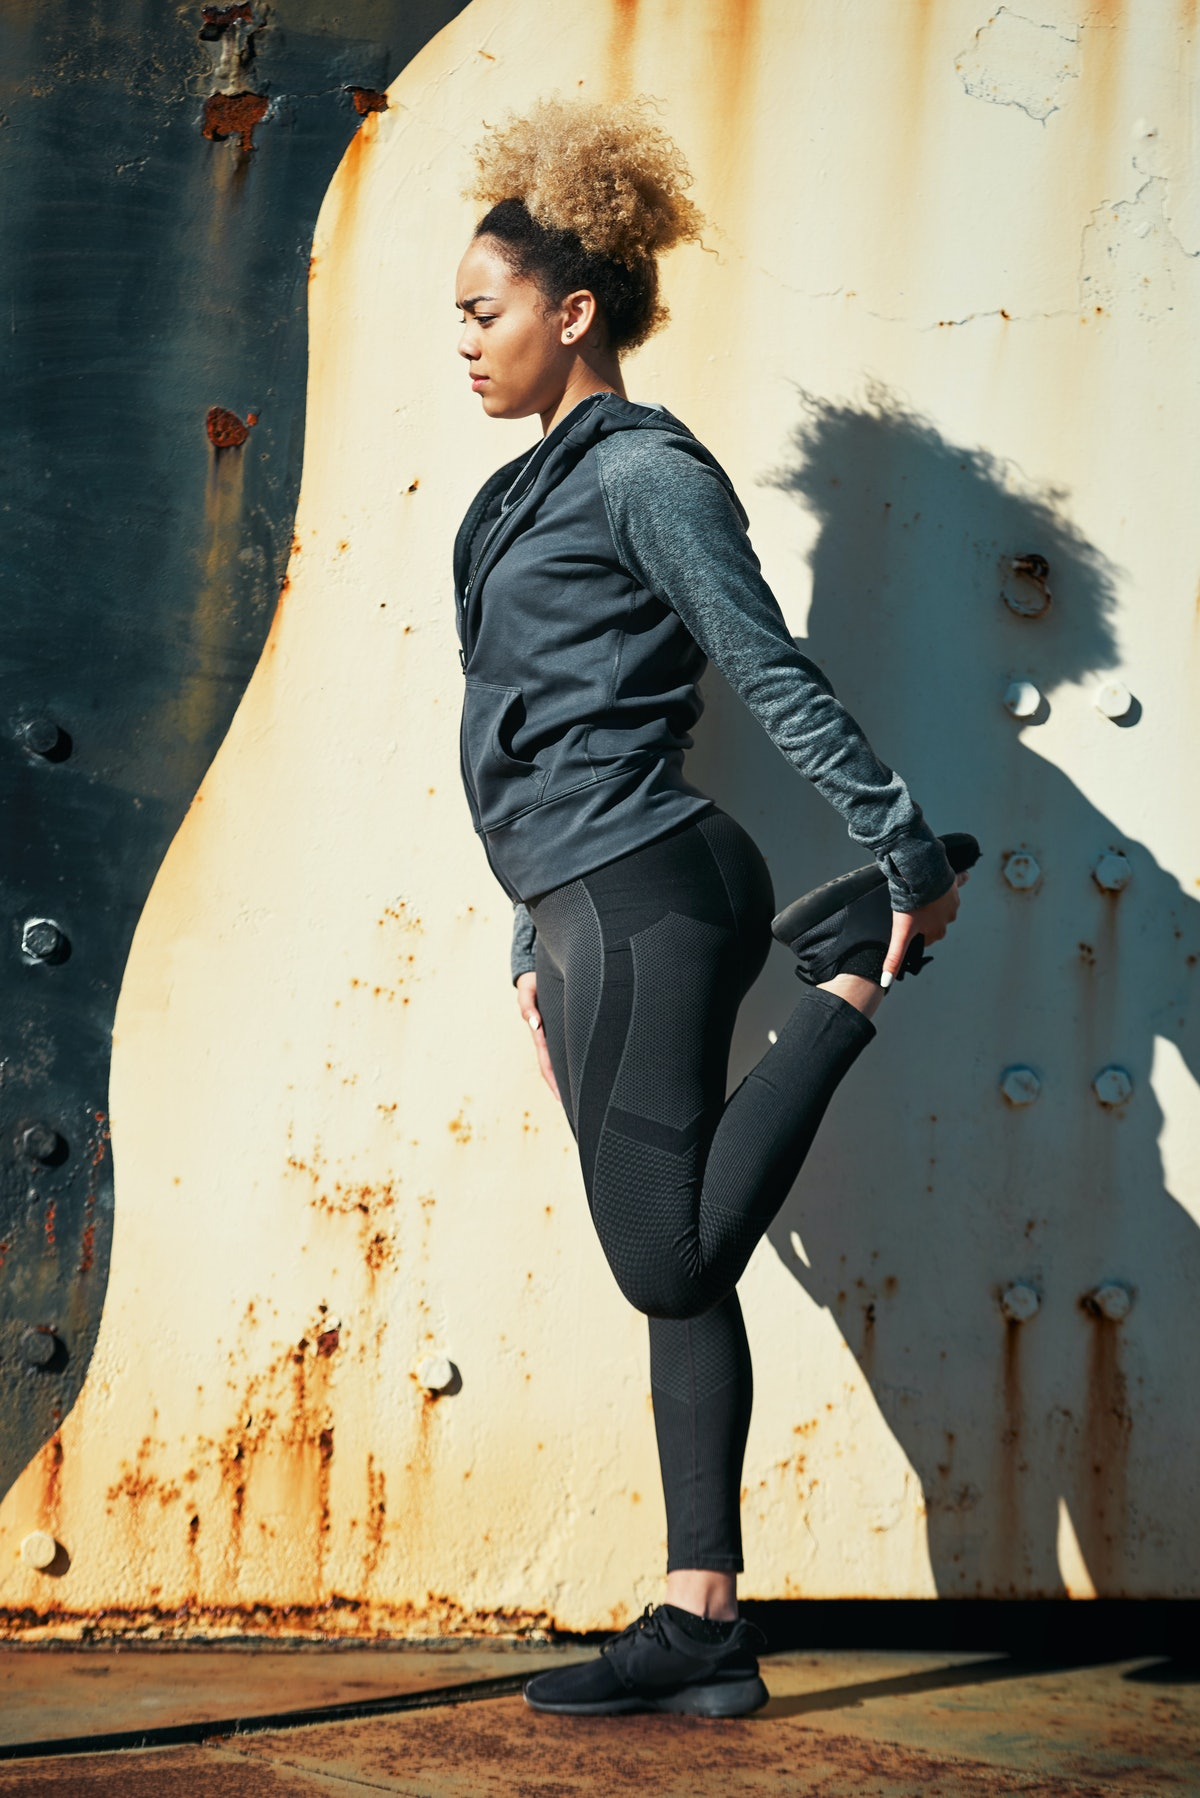 There are many ways to spice up a walk —here are different 45-minute walking workouts that bring th...